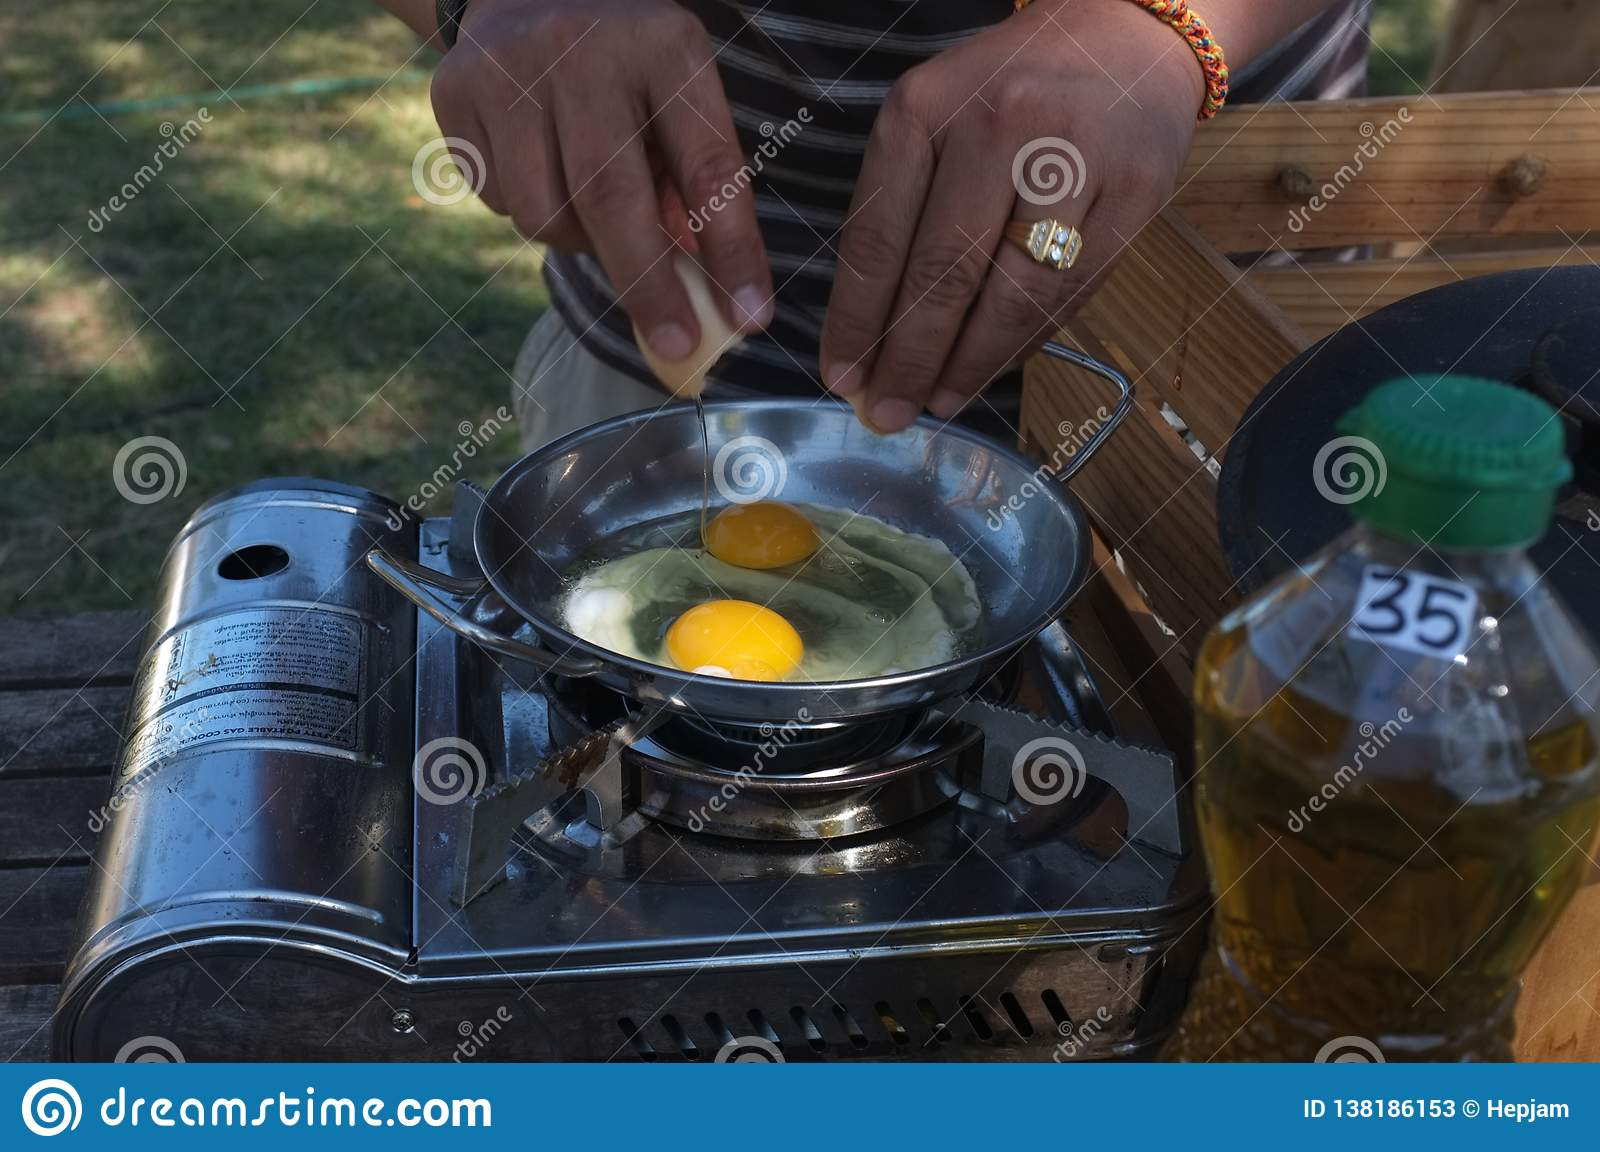 Closeup of a pair of hands cracking an egg into a pan